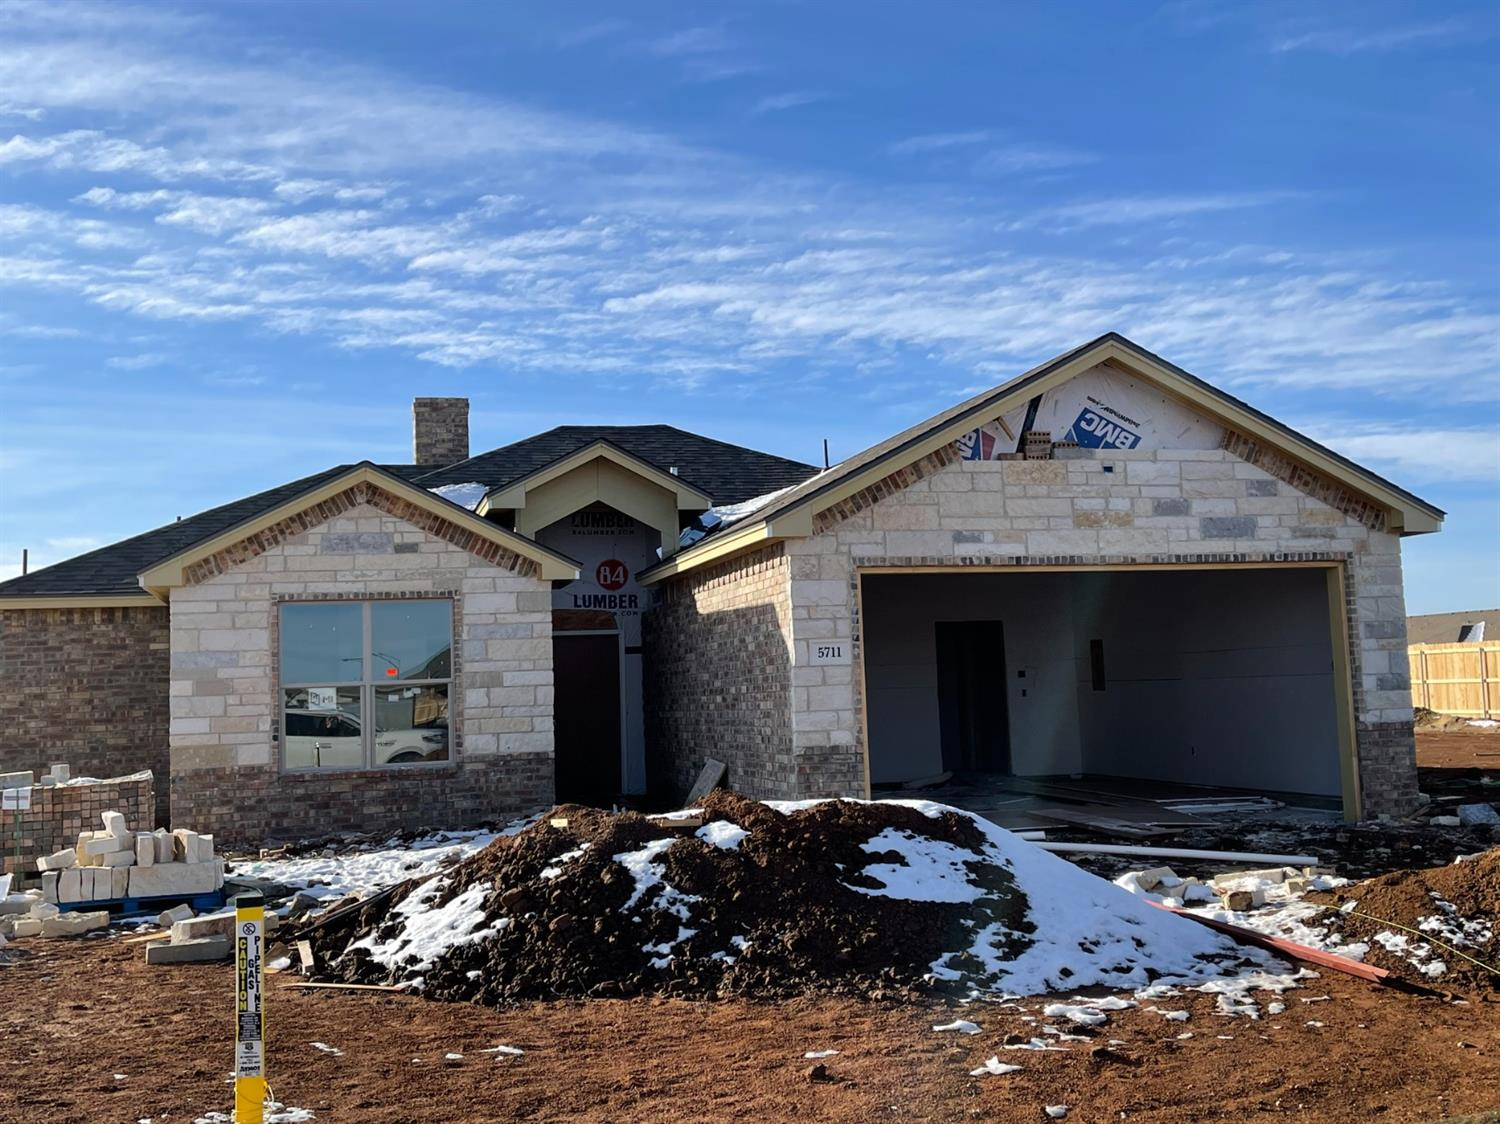 Welcome Home! Another beauty by Edge Homes featuring designer finishes, gorgeous color scheme and an amazing layout! Sprinkler Front, Back, Sod, Covered Patio and so much more!